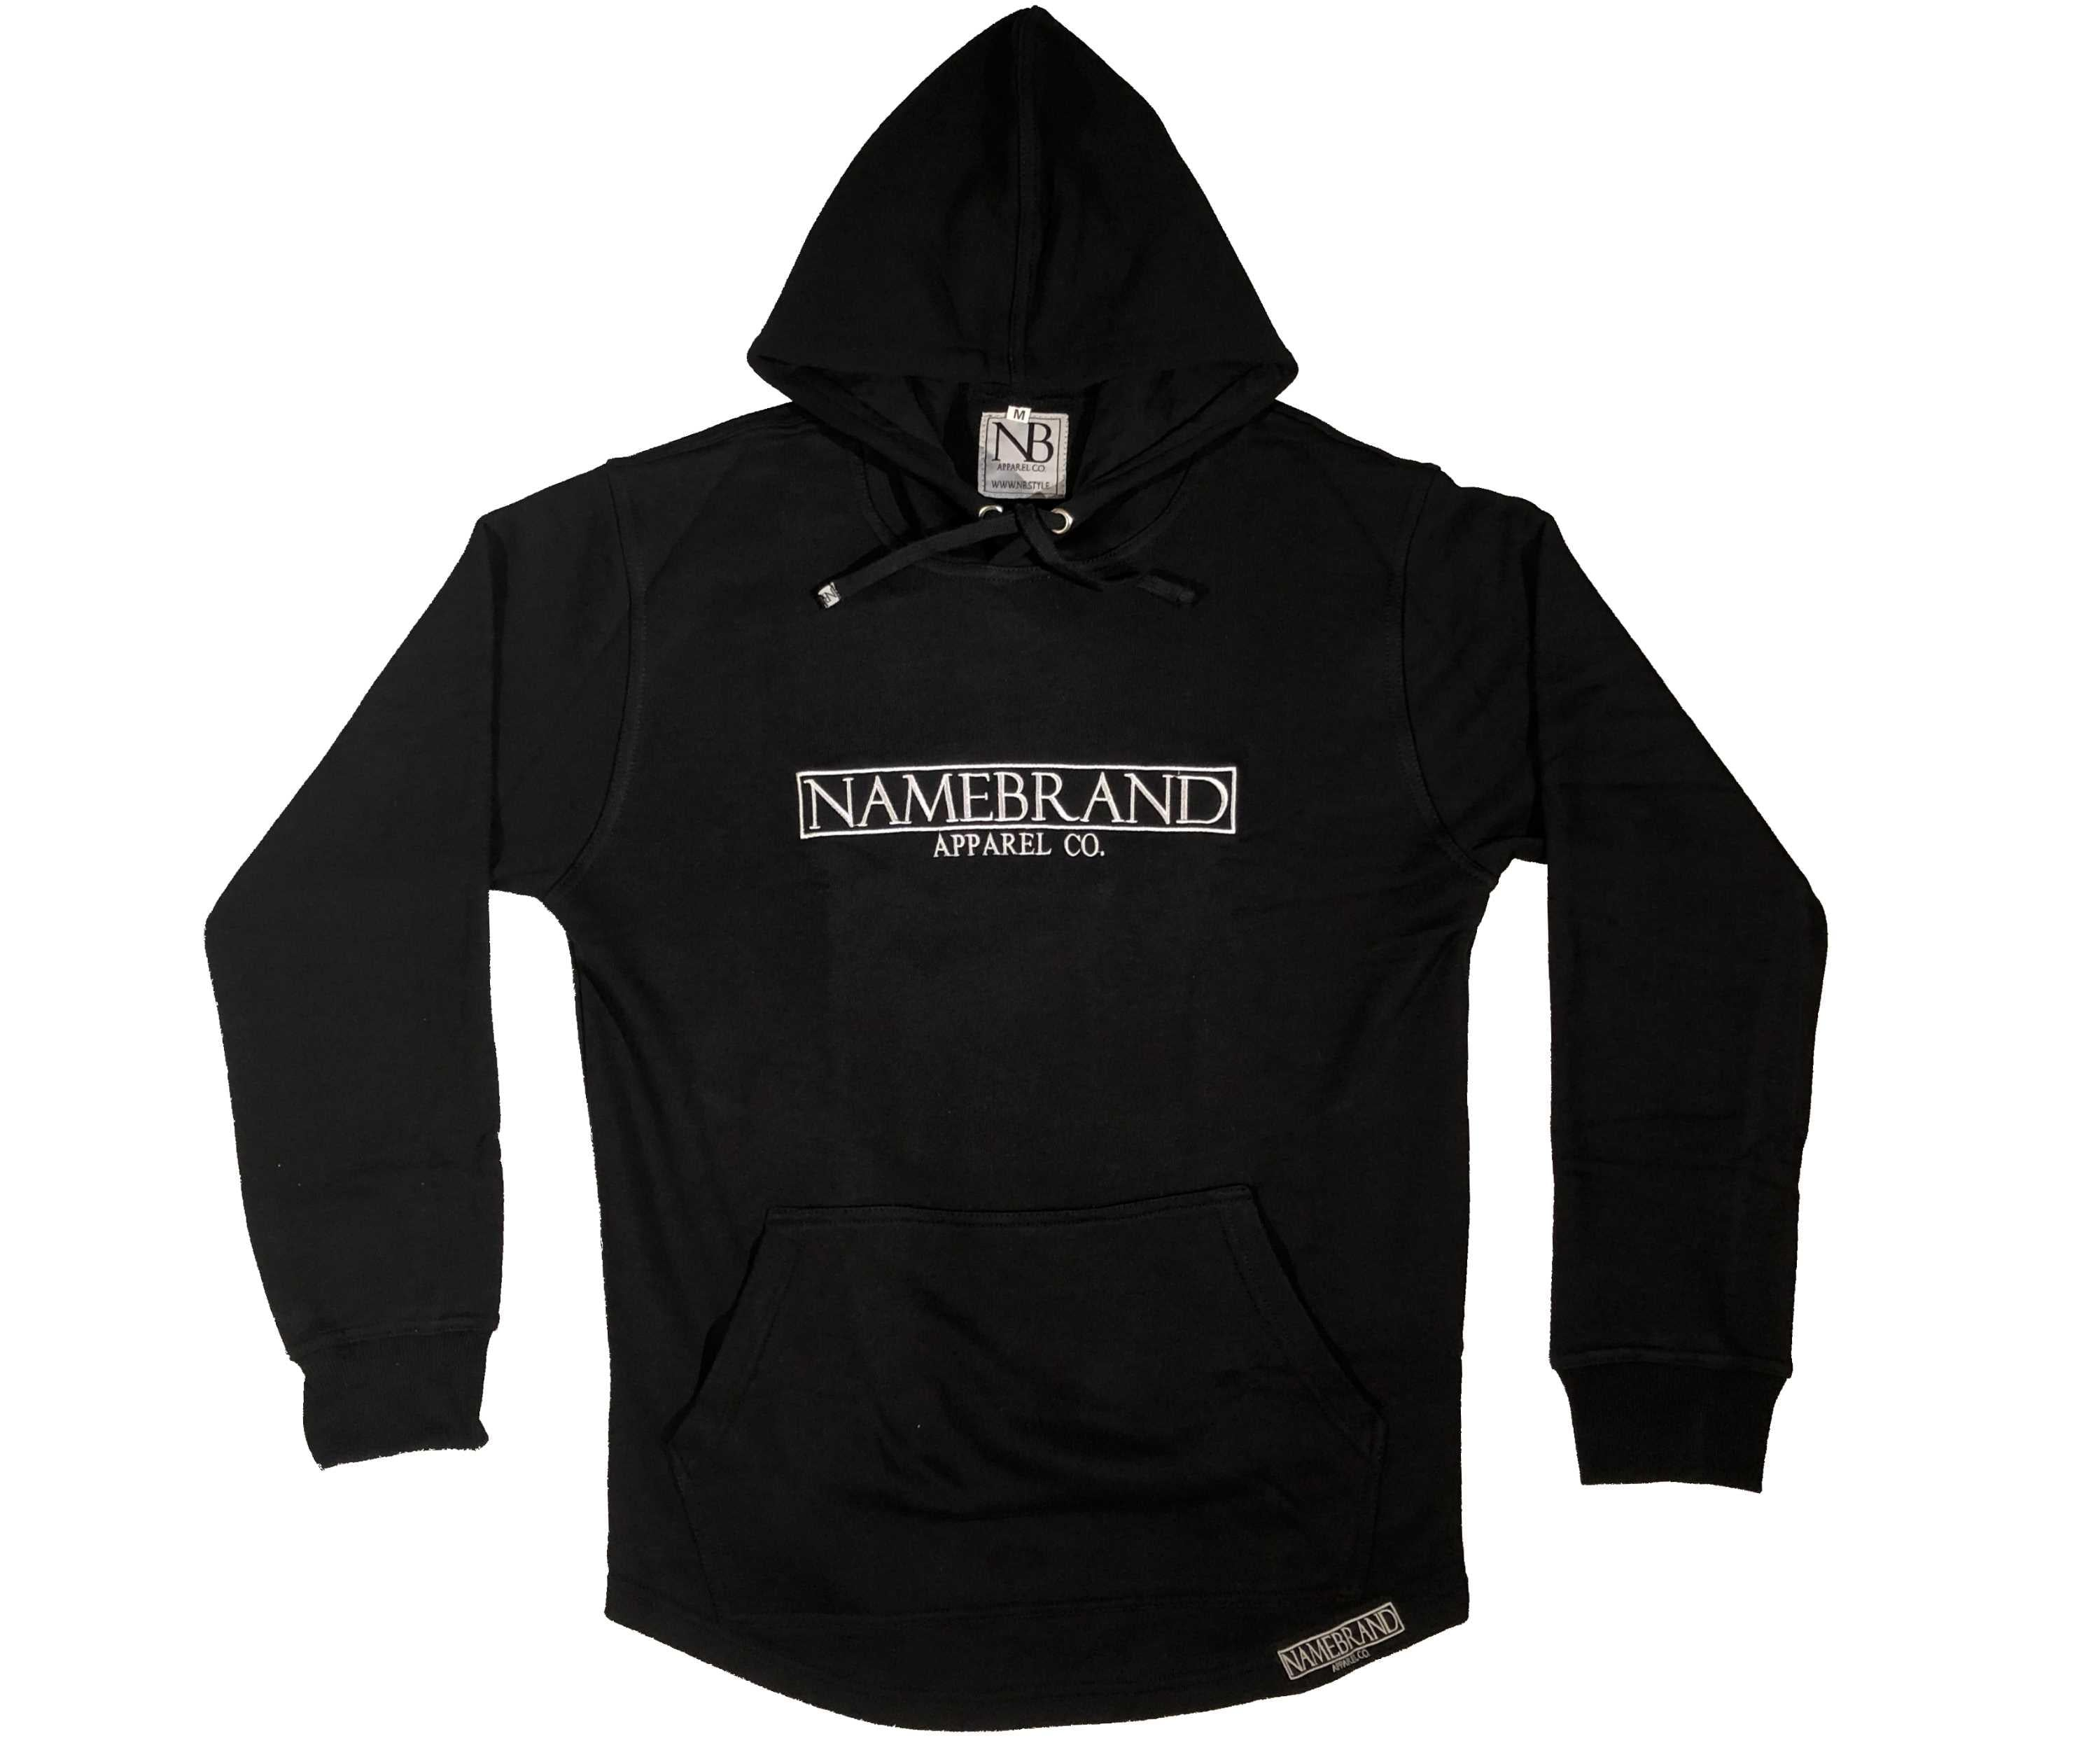 Black Embroidered Box Hoodie